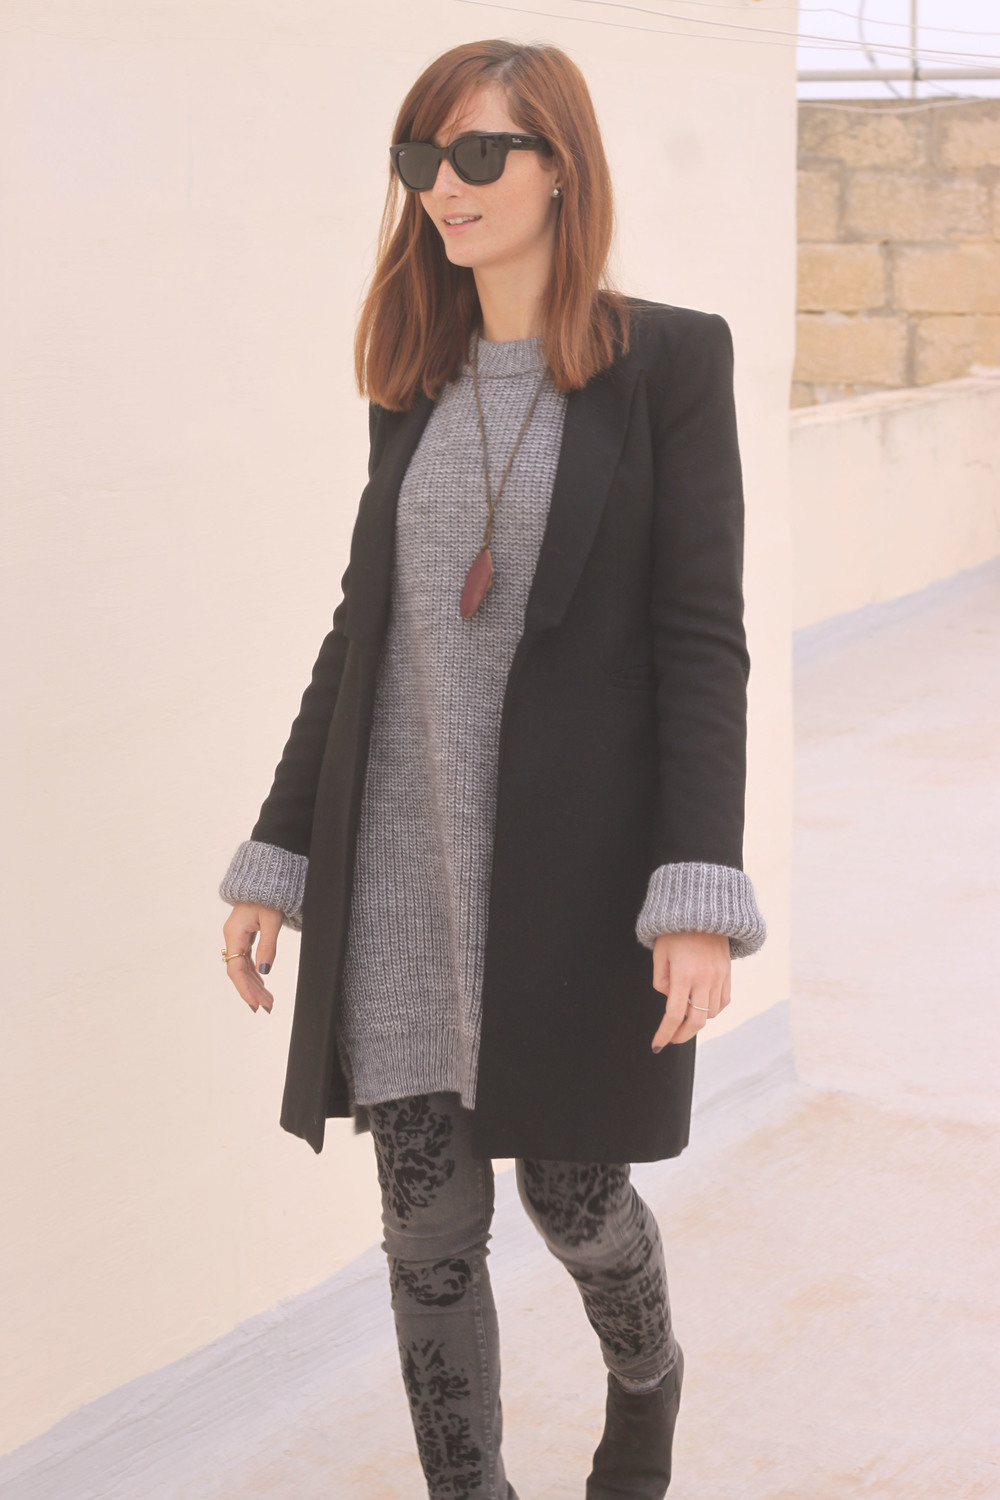 Coat, sweater dress and trousers by Zara, Shoes by Sixtyseven, Sunnies by RayBan, Vintage necklace, Ring by Ottoman Hands